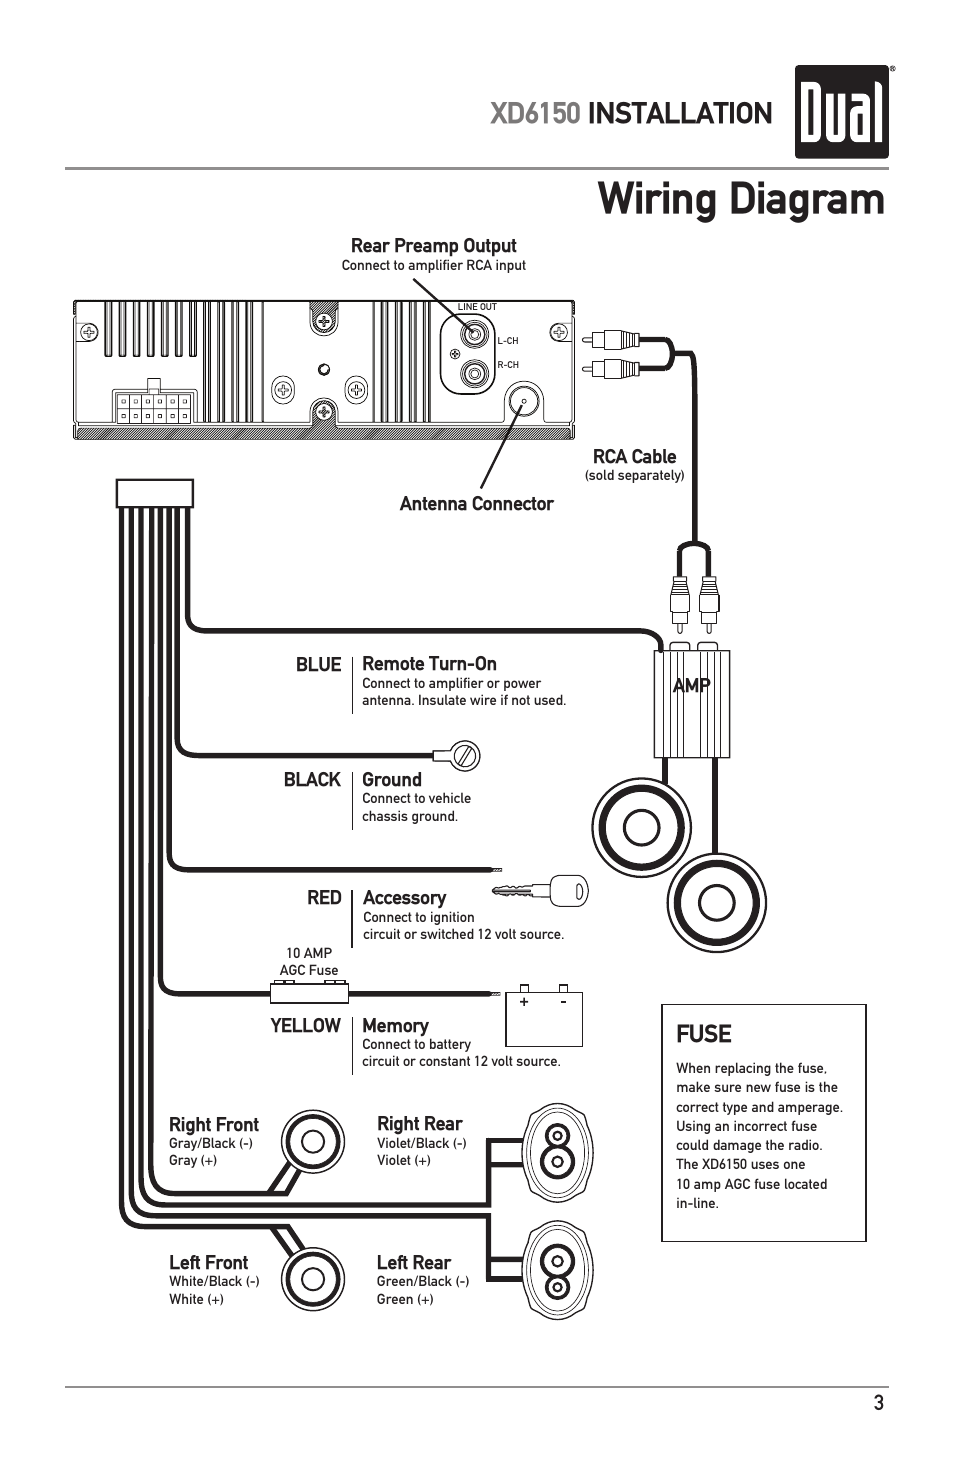 wiring diagram, xd6150 installation, fuse dual xd6150 user manual 24 Volt Wiring Diagram